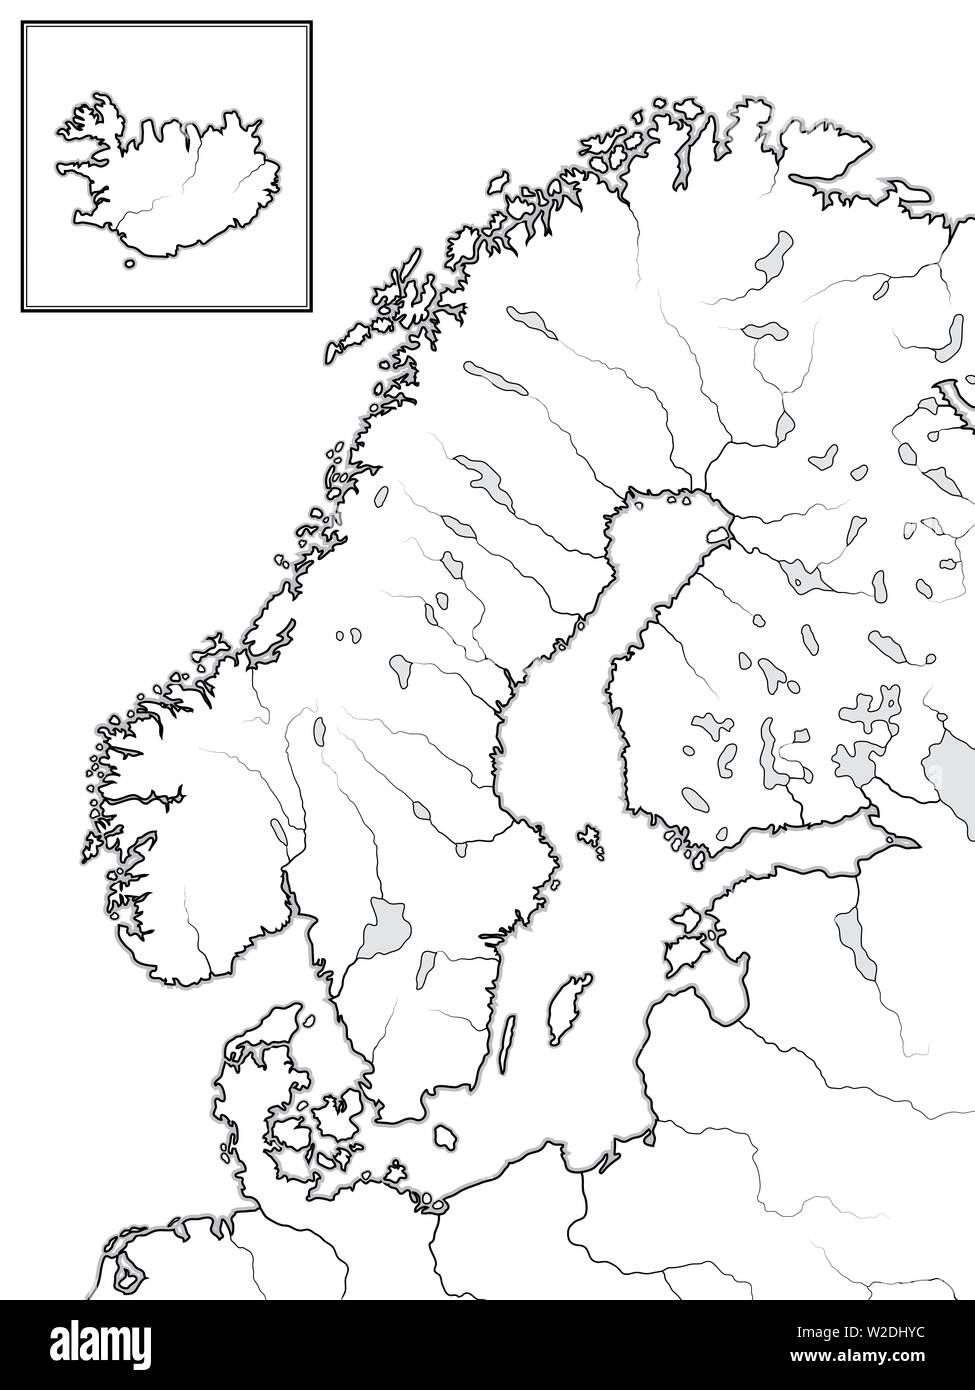 Map of The SCANDINAVIAN Lands: Scandinavia, Sweden, Norway ... Map Insert on connect map, line map, find map, read map, map with inset map, search map, create map, move map, change map, legend on a map, view map, make your own wedding map, data map, inner map, esc map, open map, locate map, add map, locator map,